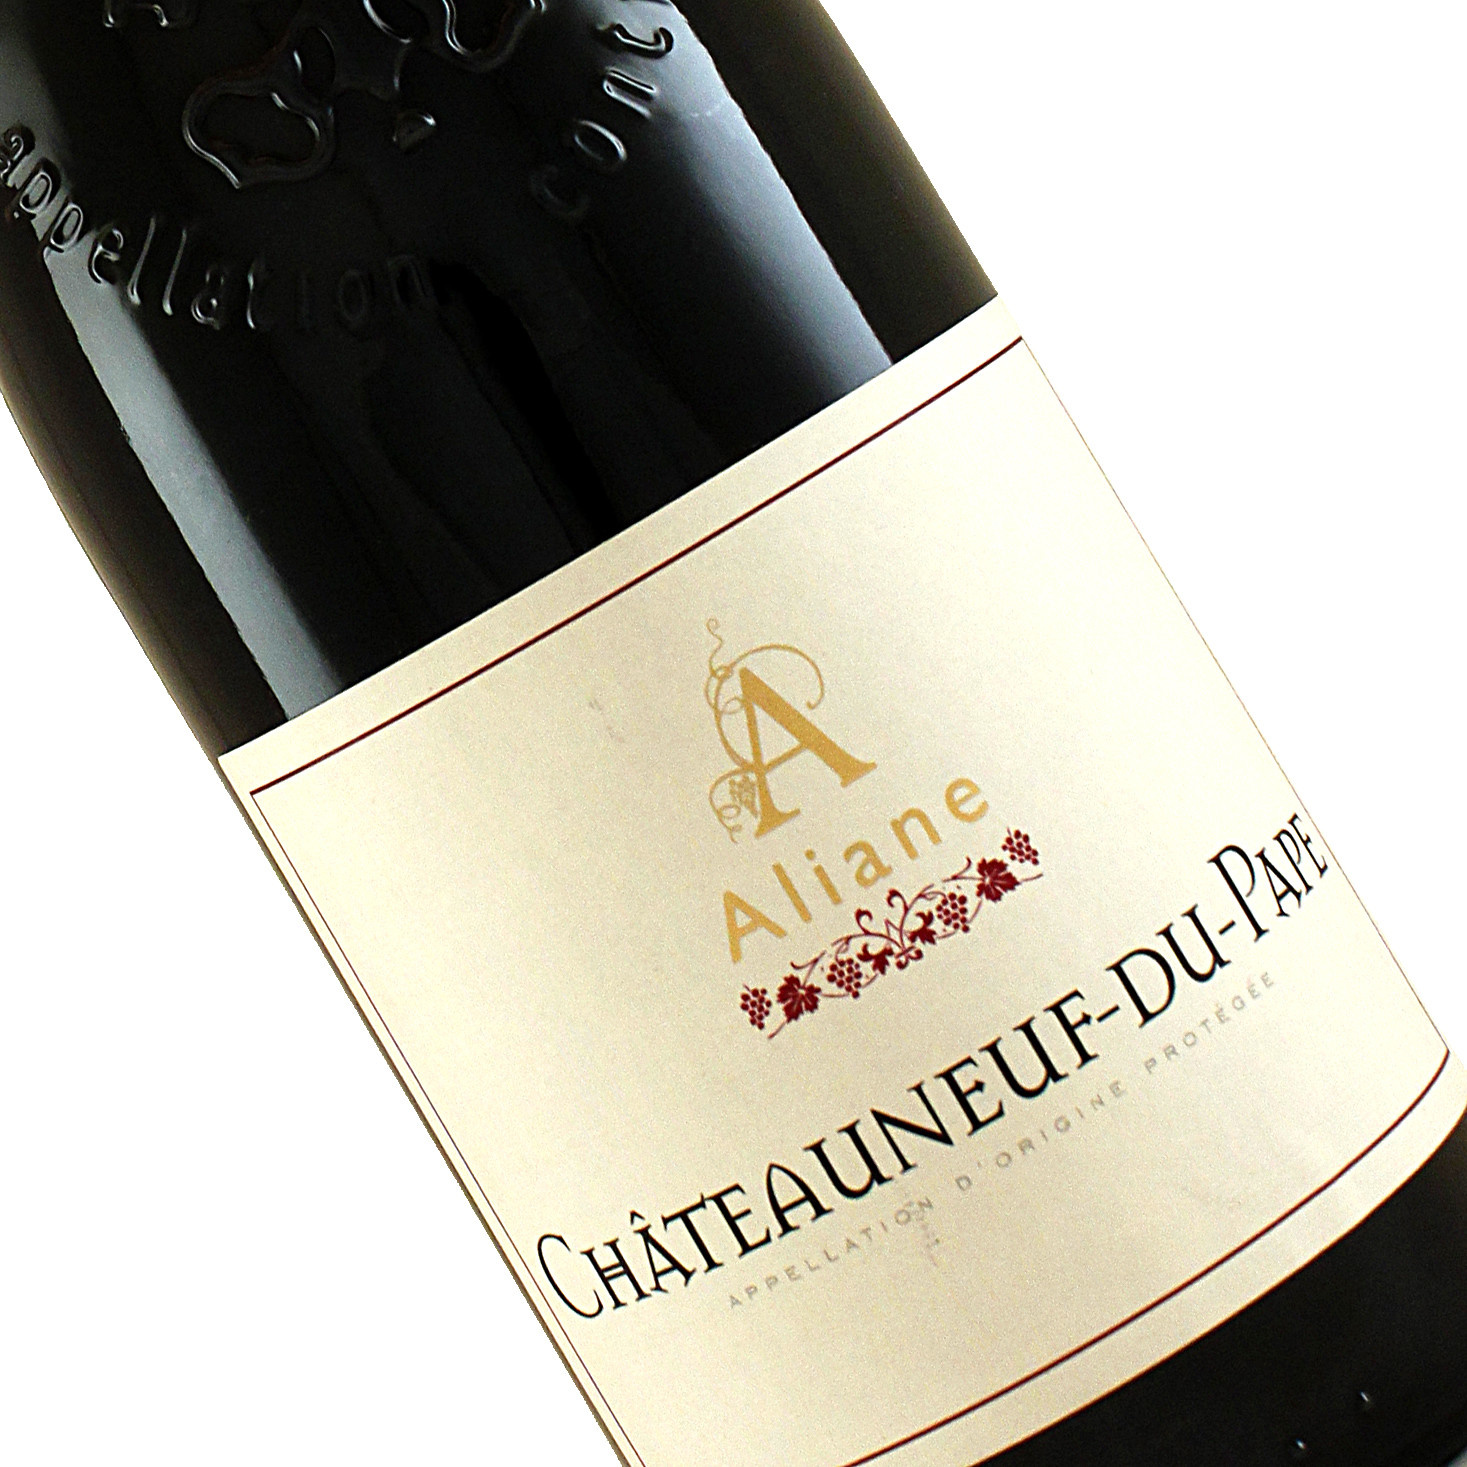 Aliane 2016 Chateauneuf-Du-Pape, Rhone Valley